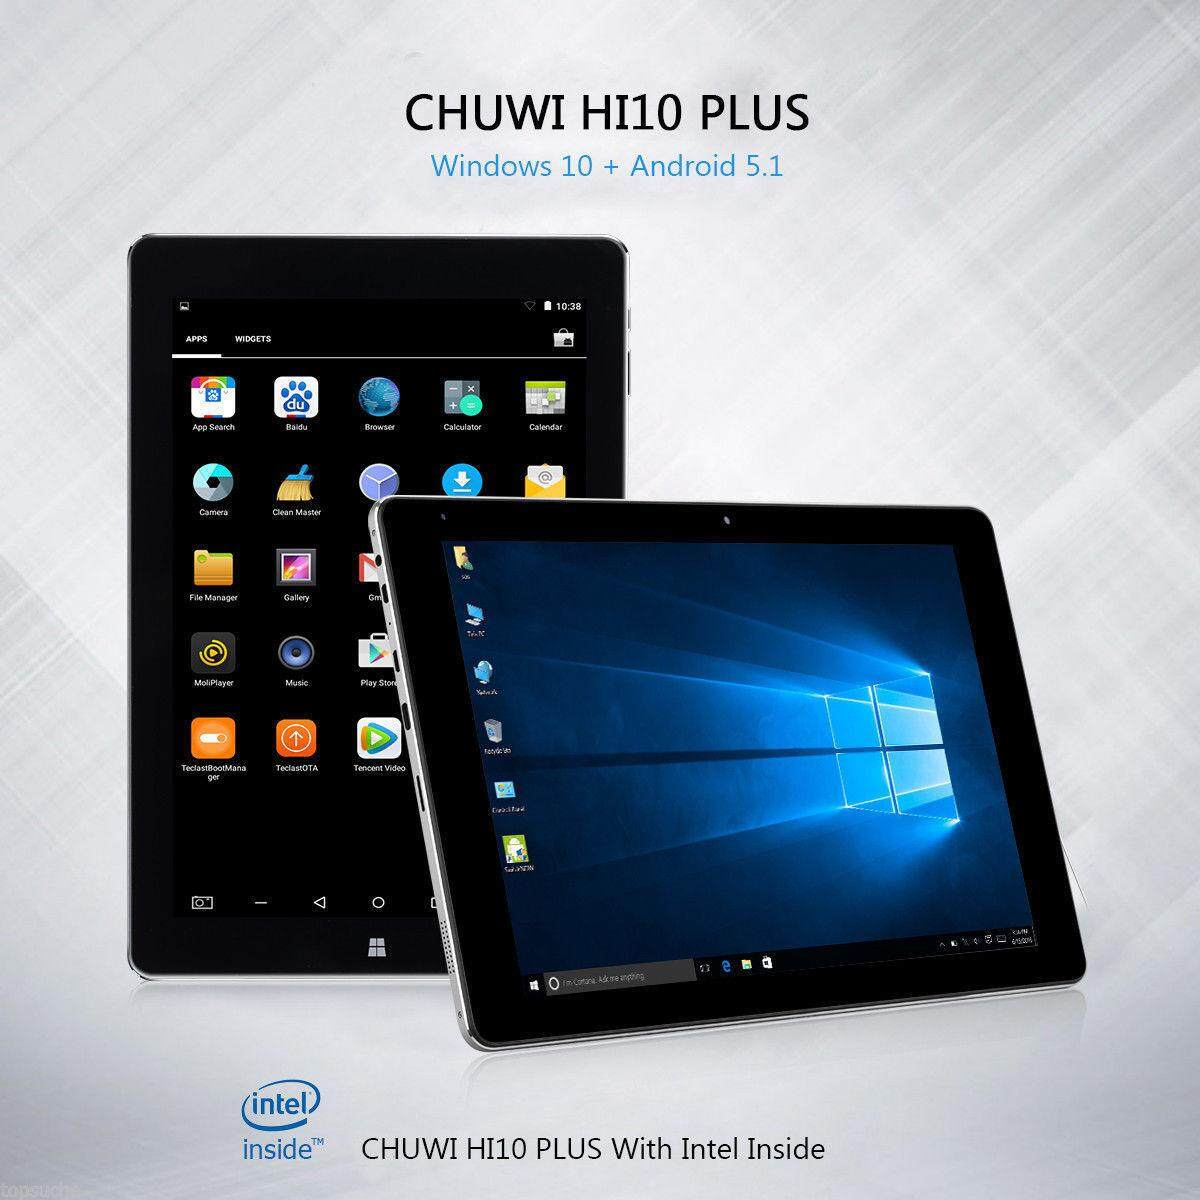 Hot!CHUWI HI10 PLUS CWI527 10.8 inch Windows 10 + Android 5.1 Tablet PC Intel Cherry Trail Quad Core 1.44GHz (4GB RAM +64GB ROM)Type-C HDMI